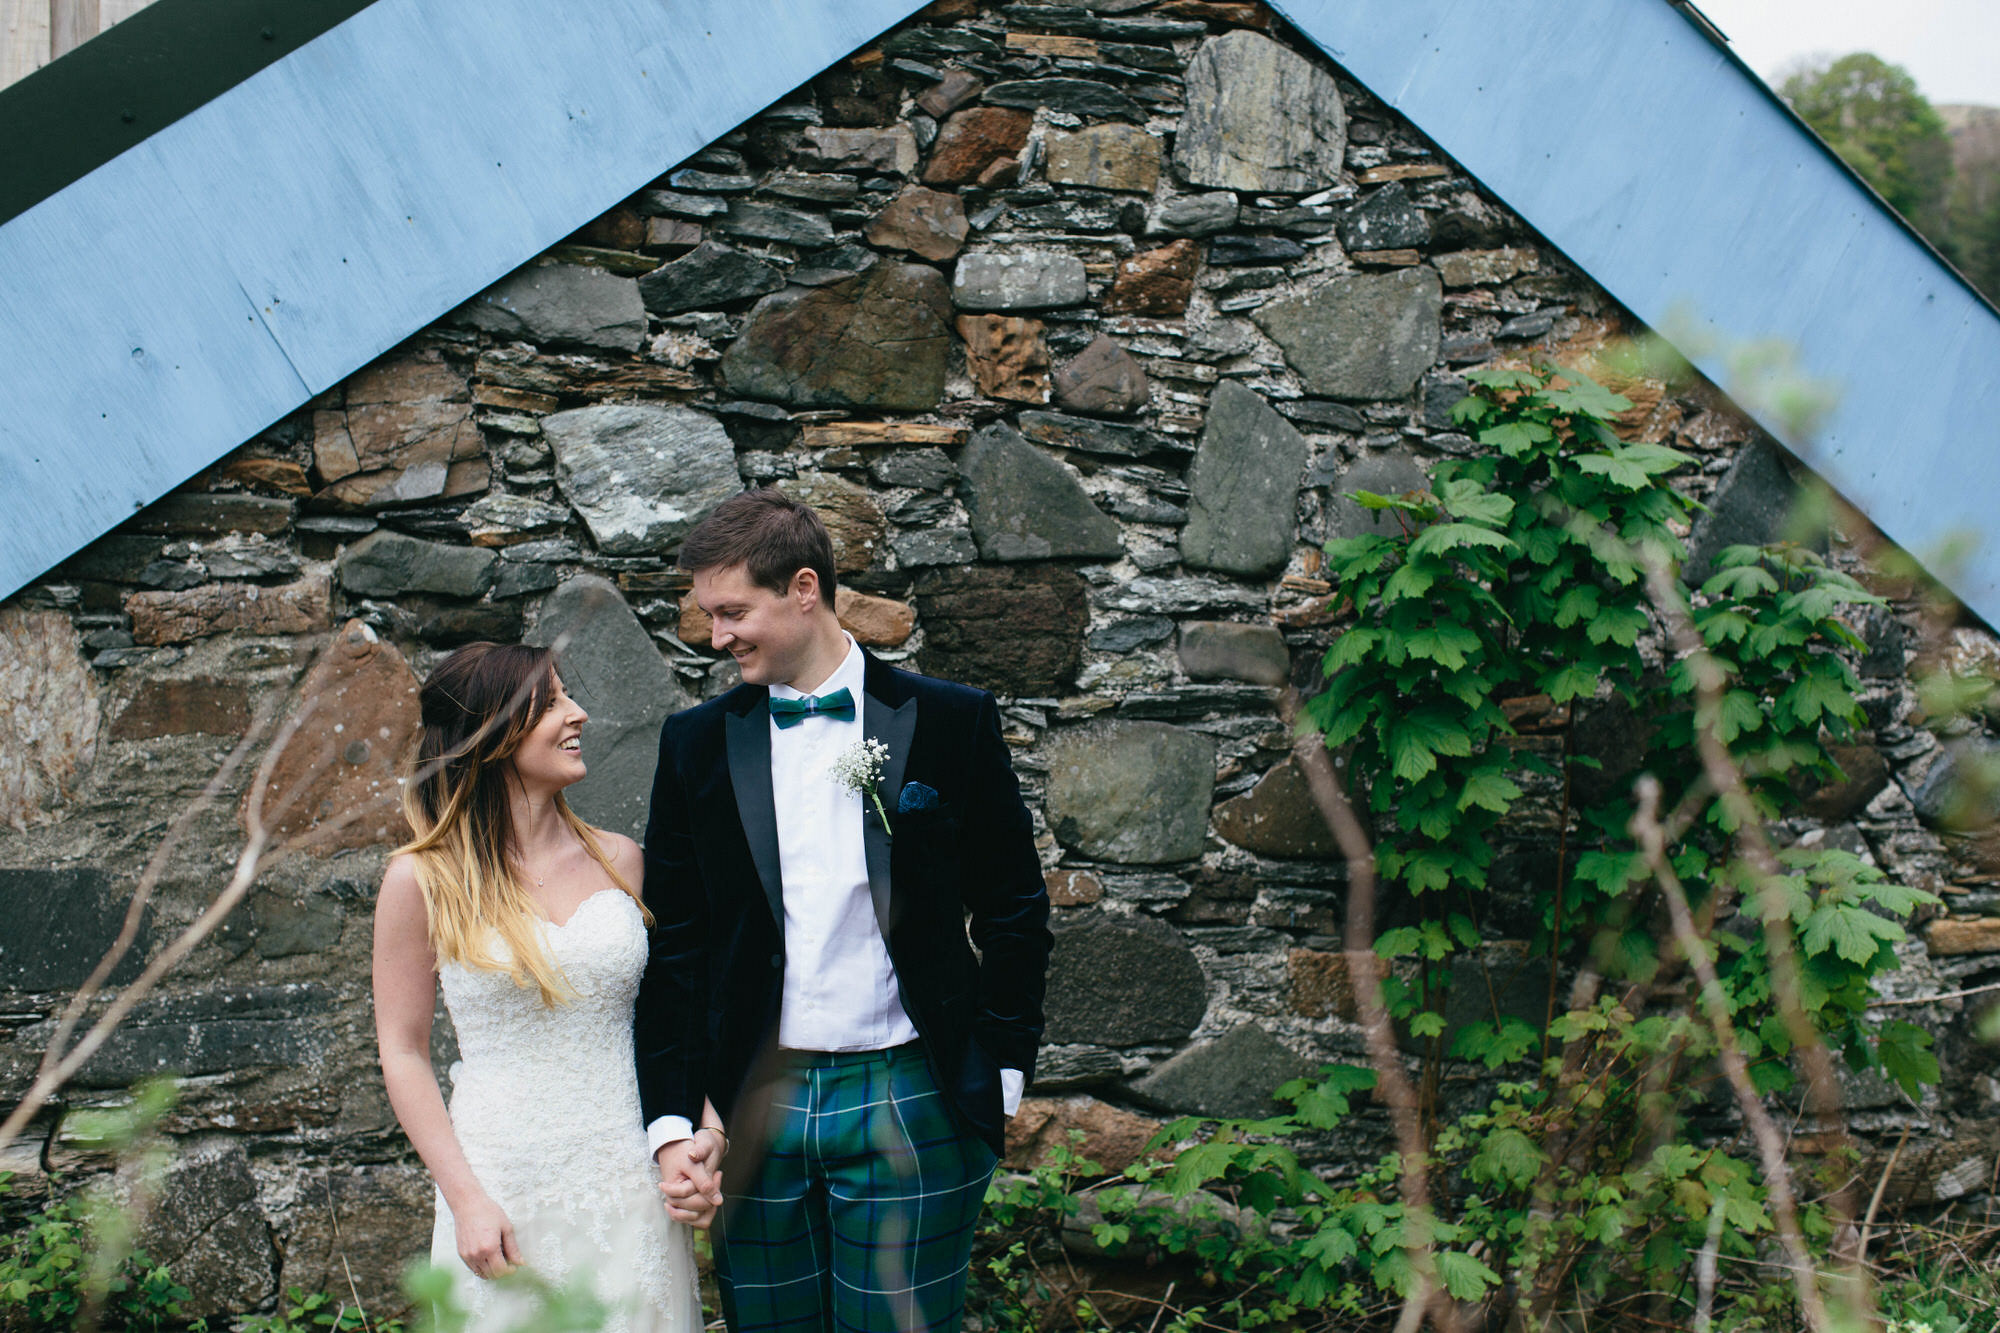 Alternative Natural Quirky Wedding Photographs UK Scotland 199.jpg